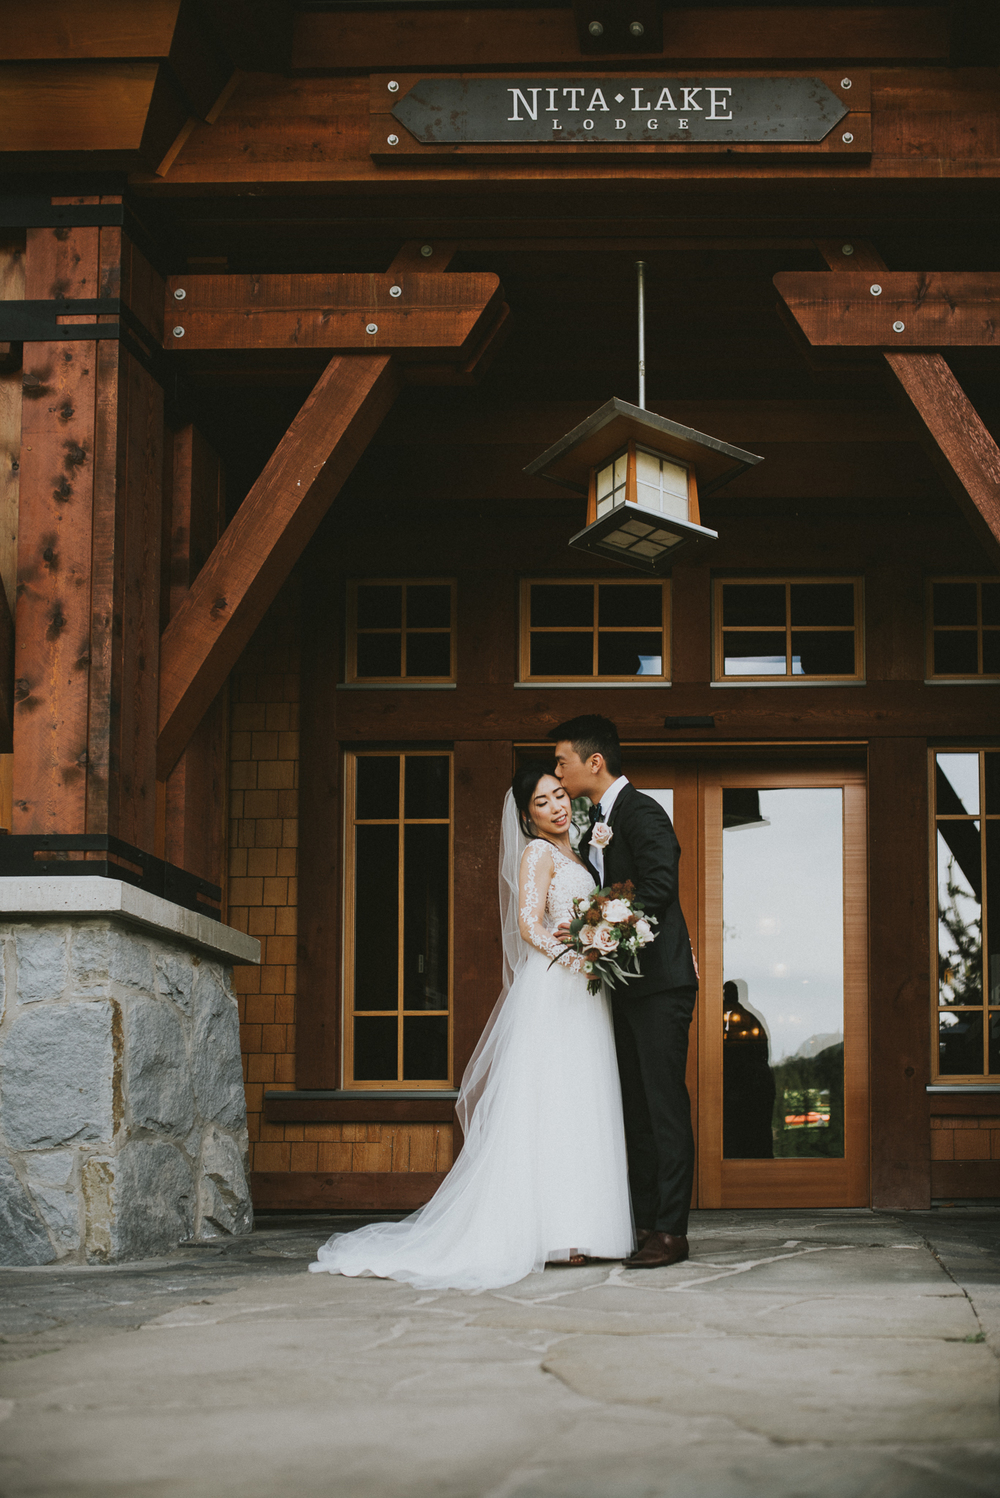 Nita Lake Lodge wedding